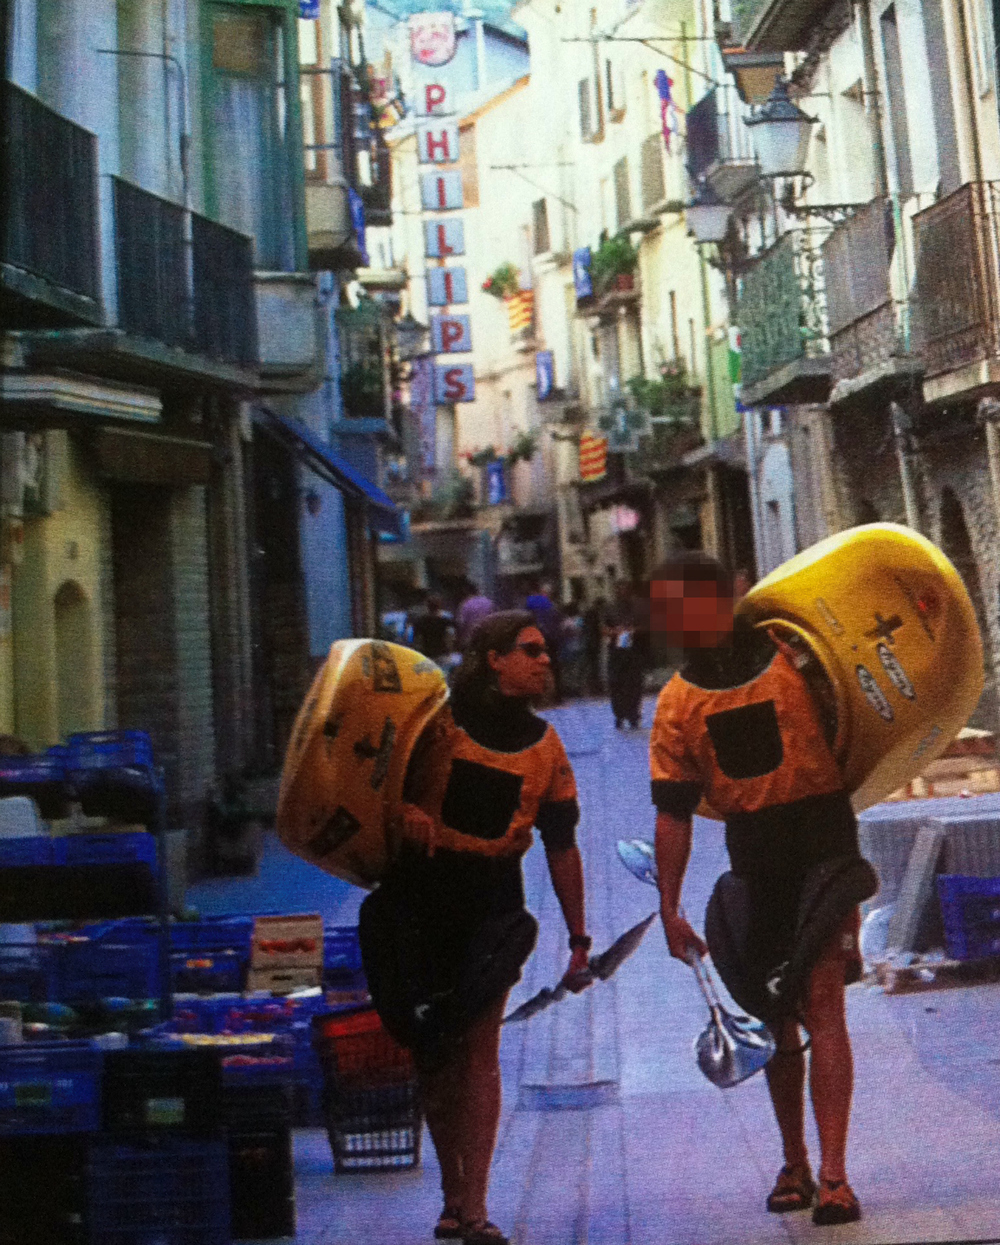 That's us in Spain for the 2001 World Championships